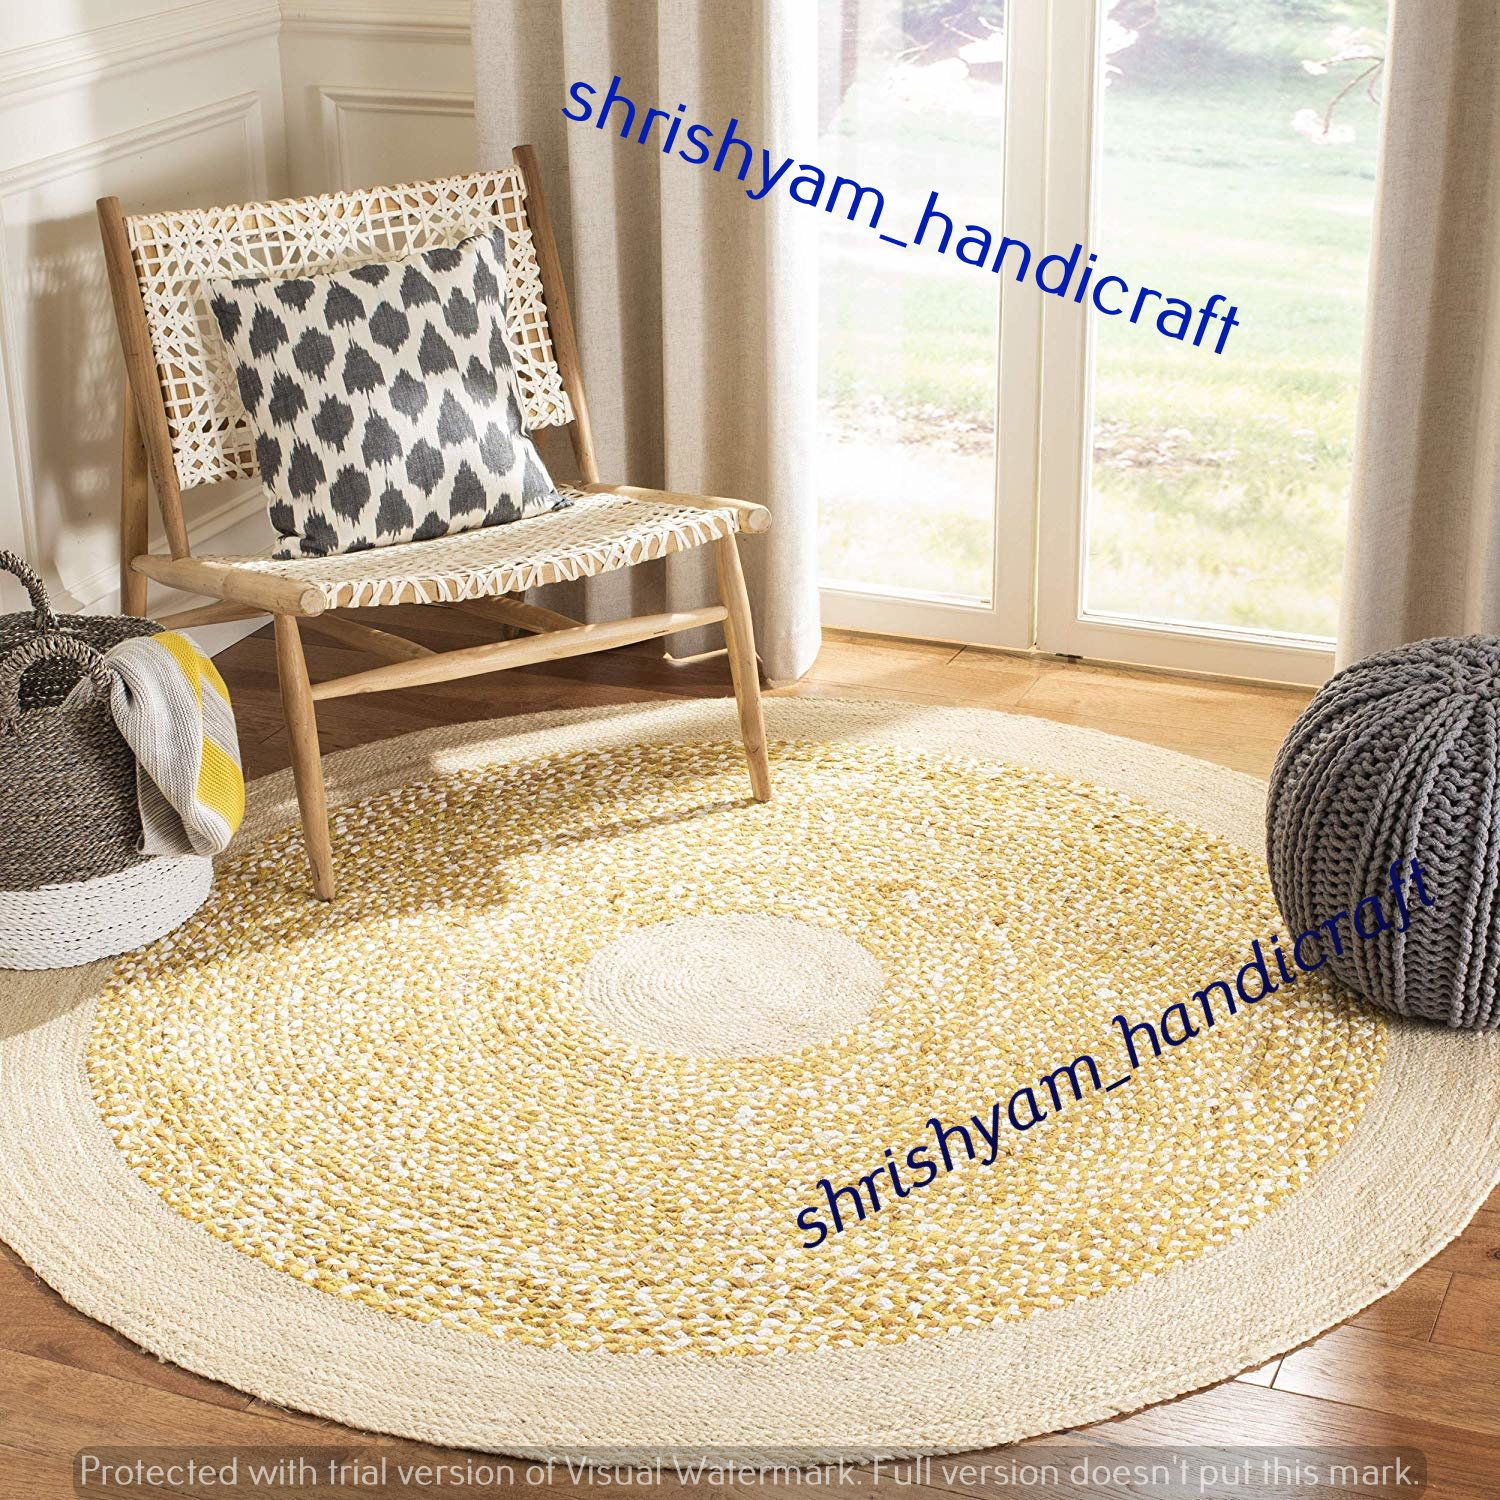 Cheap 5x5 Area Rugs